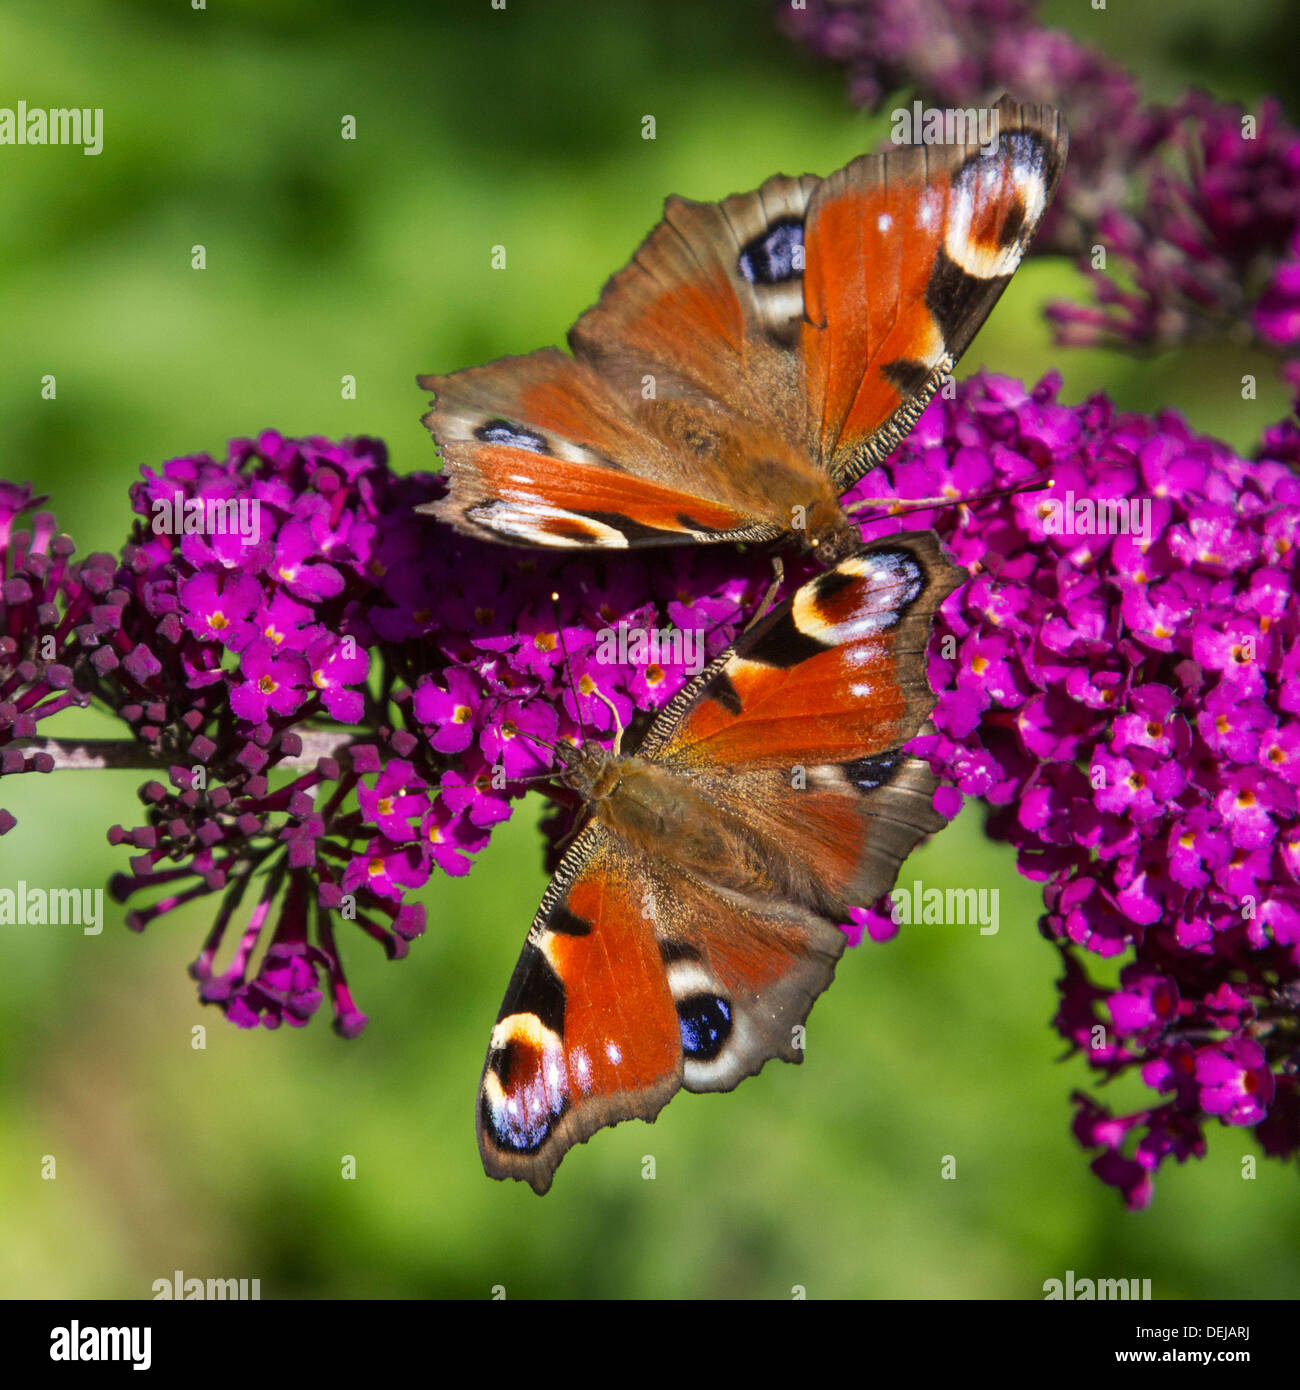 Two European Peacock butterflies (Aglais io / Inachis io) on summer lilac flowers / butterfly-bush (Buddleja davidii) - Stock Image